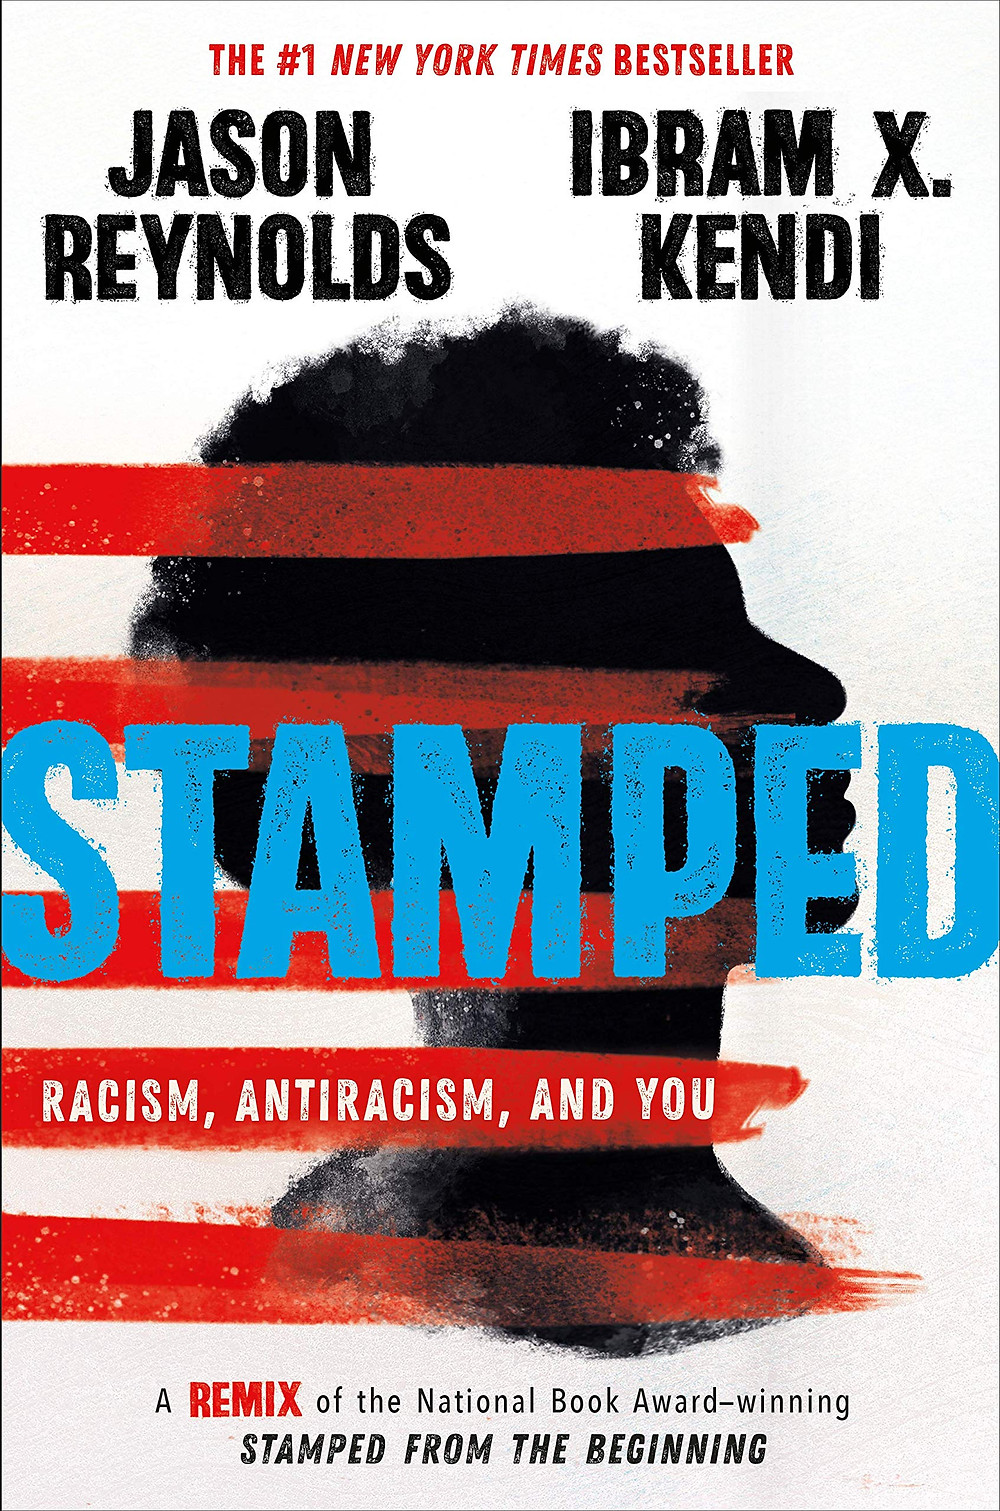 The book cover of Stamped